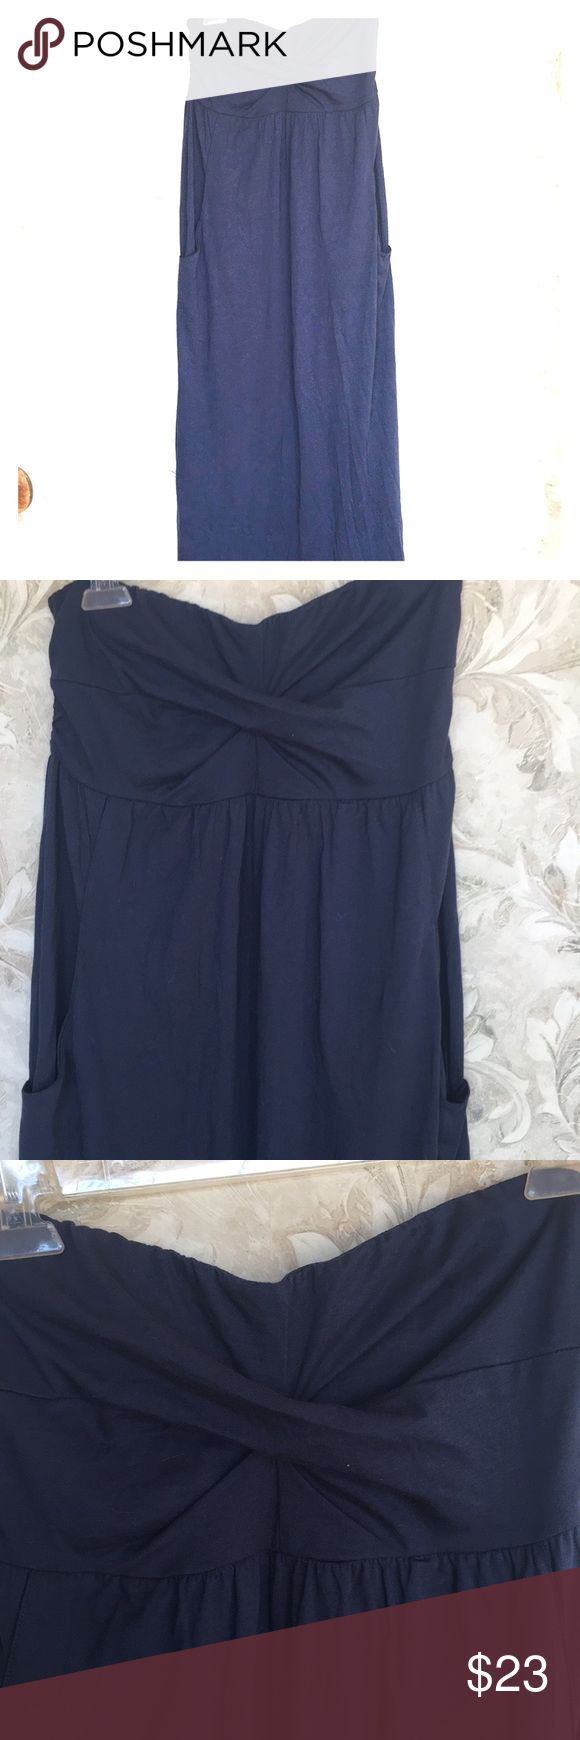 "Navy Strapless Maxi Dress Navy bandeau strapless / halter maxi dress from Garnet Hill. Brand new summer 2017 never worn. Front pockets. Padded built-in bra. Detachable halter strap. Cotton blend, machine wash. Empire waist. Size small - fits size 6-8. Approx 14"" across bust (has stretch); 50"" long from top to bottom hem. garnet hill Dresses Maxi"